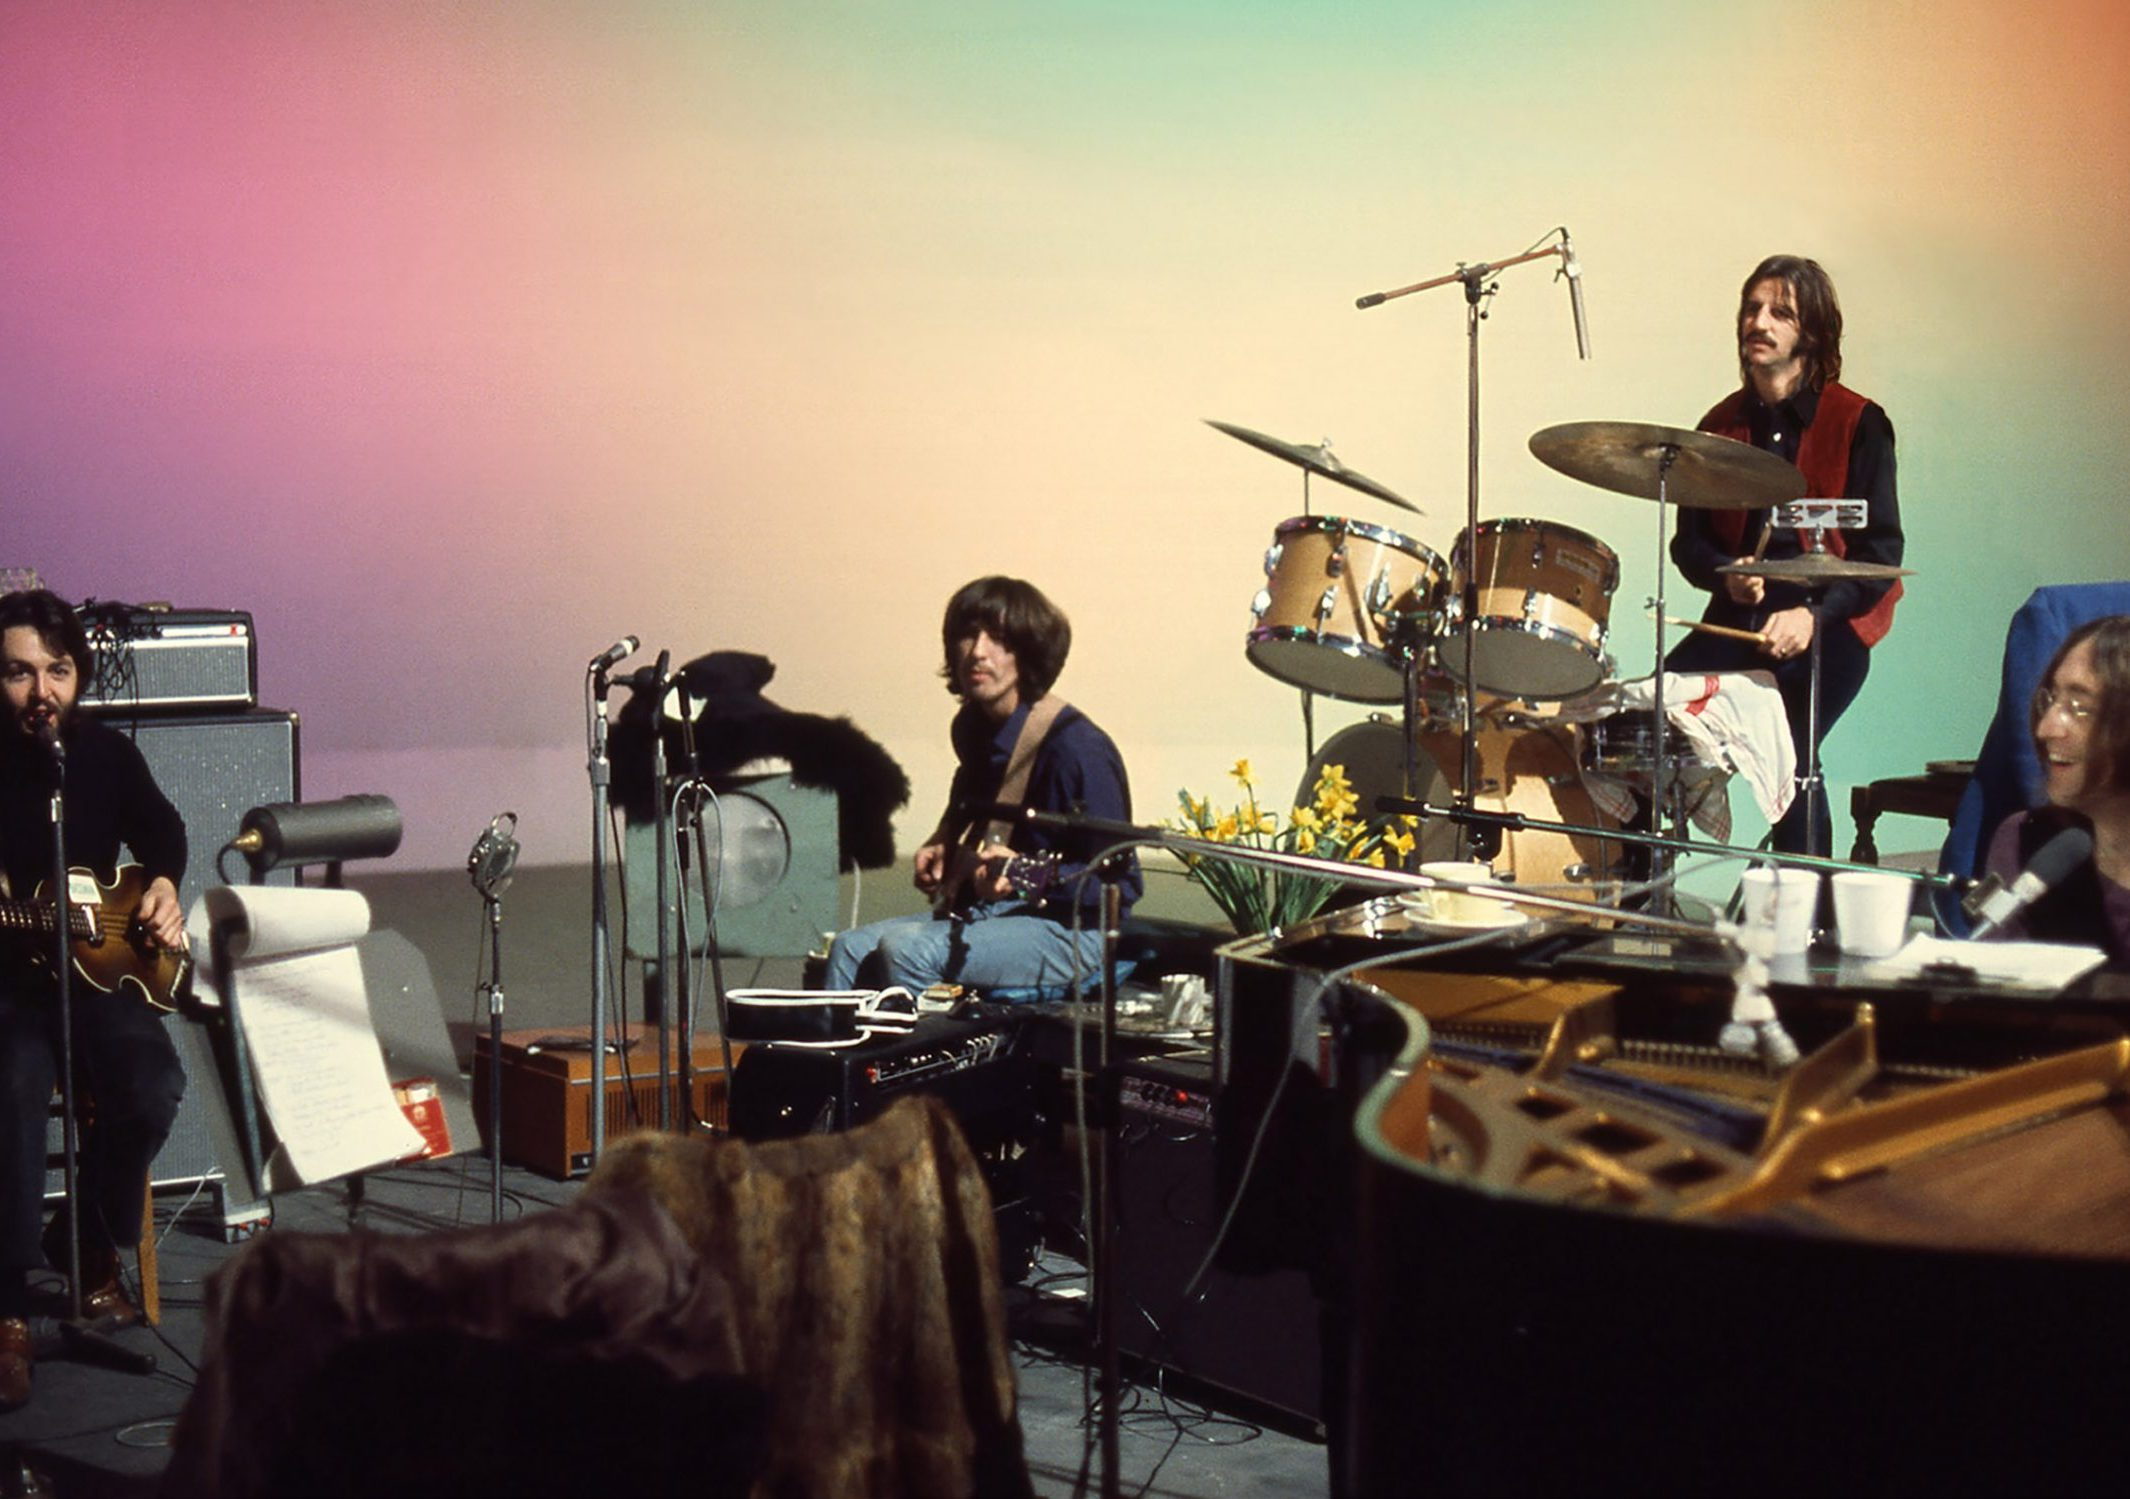 The Beatles make one last record in the Get Back documentary trailer